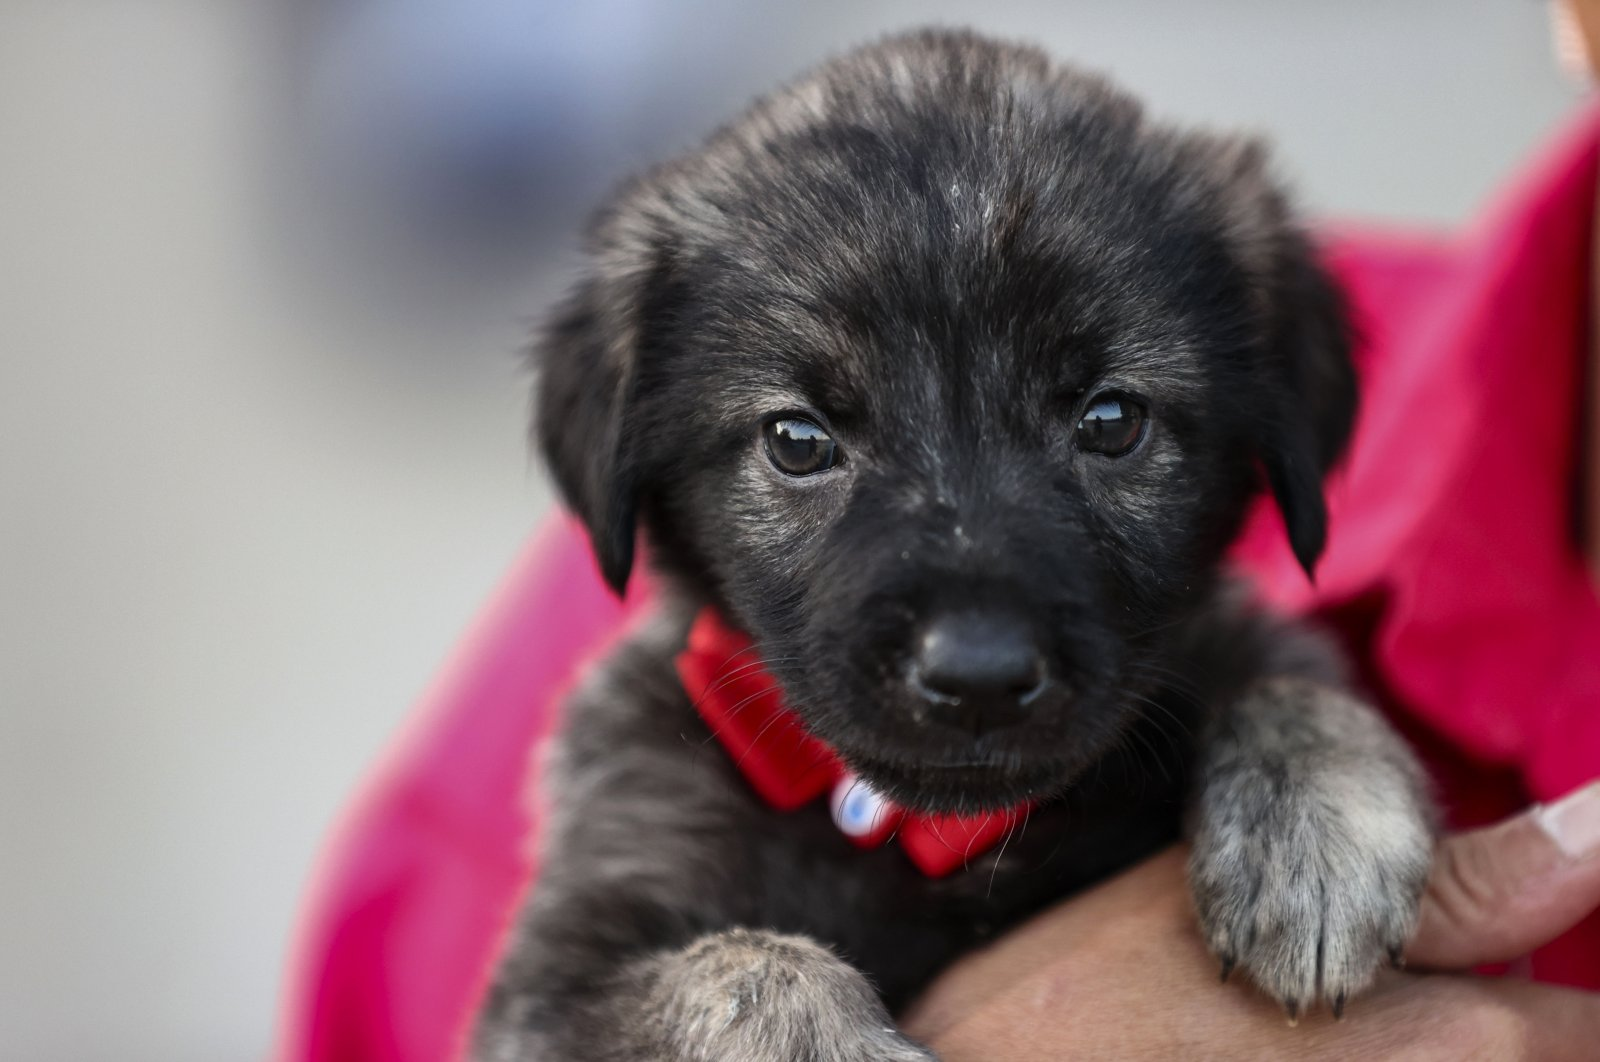 A staff member at the animal shelter holds a puppy brought to her after the floods, in the capital Ankara, Turkey, Aug. 26, 2021. (AA PHOTO)